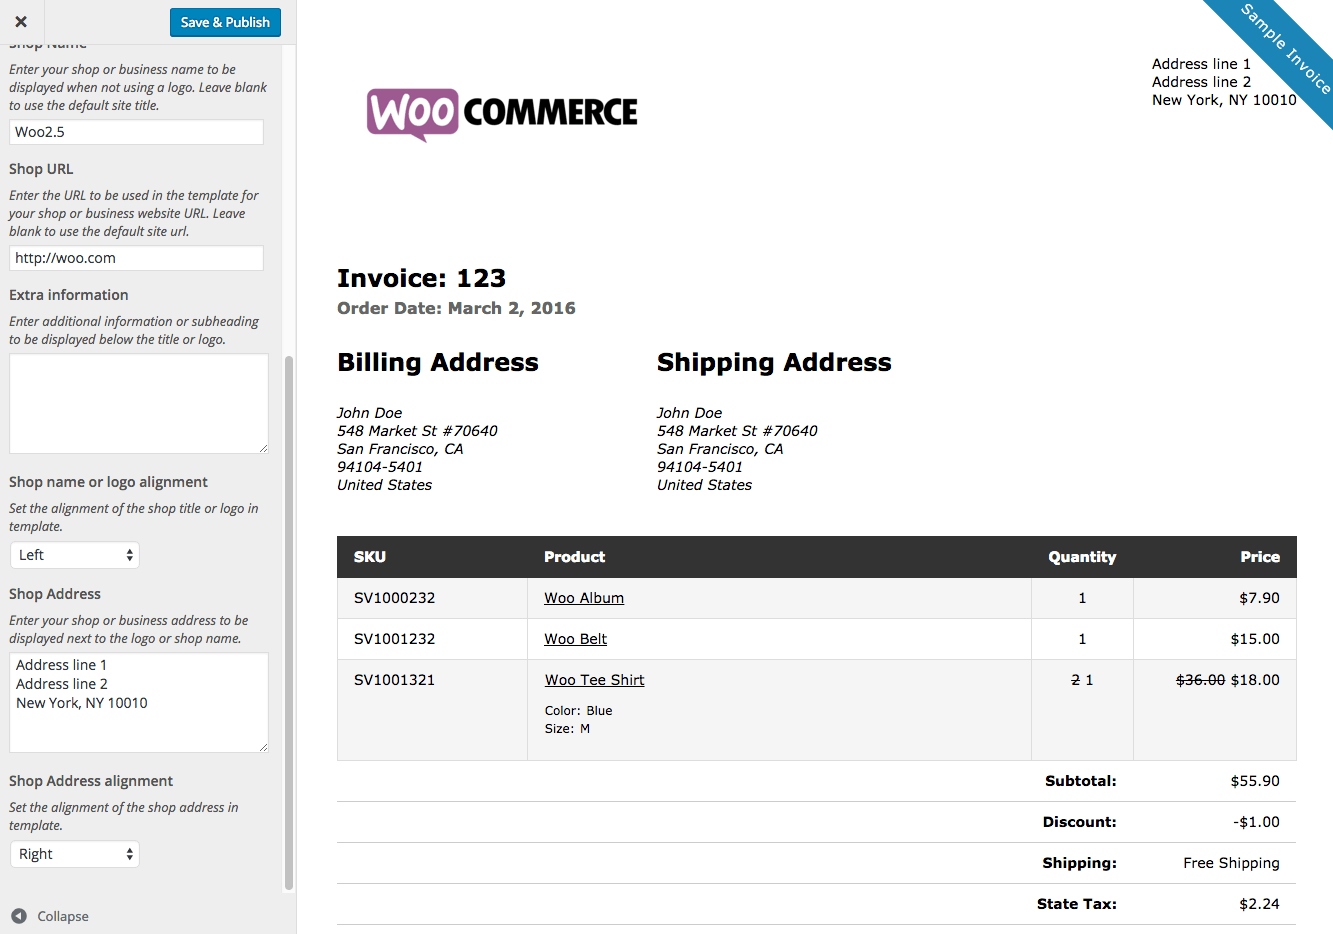 Coachoutletonlineplusus  Sweet Print Invoices Amp Packing Lists  Woocommerce With Goodlooking Woocommerce Print Invoices  Packing Lists Customizer With Breathtaking Lowes No Receipt Return Policy Also Receipt Reference Number In Addition Pg Rent Receipt Format And Gamestop Return Policy No Receipt As Well As Boston Coach Receipts Additionally Storing Receipts Electronically From Woocommercecom With Coachoutletonlineplusus  Goodlooking Print Invoices Amp Packing Lists  Woocommerce With Breathtaking Woocommerce Print Invoices  Packing Lists Customizer And Sweet Lowes No Receipt Return Policy Also Receipt Reference Number In Addition Pg Rent Receipt Format From Woocommercecom